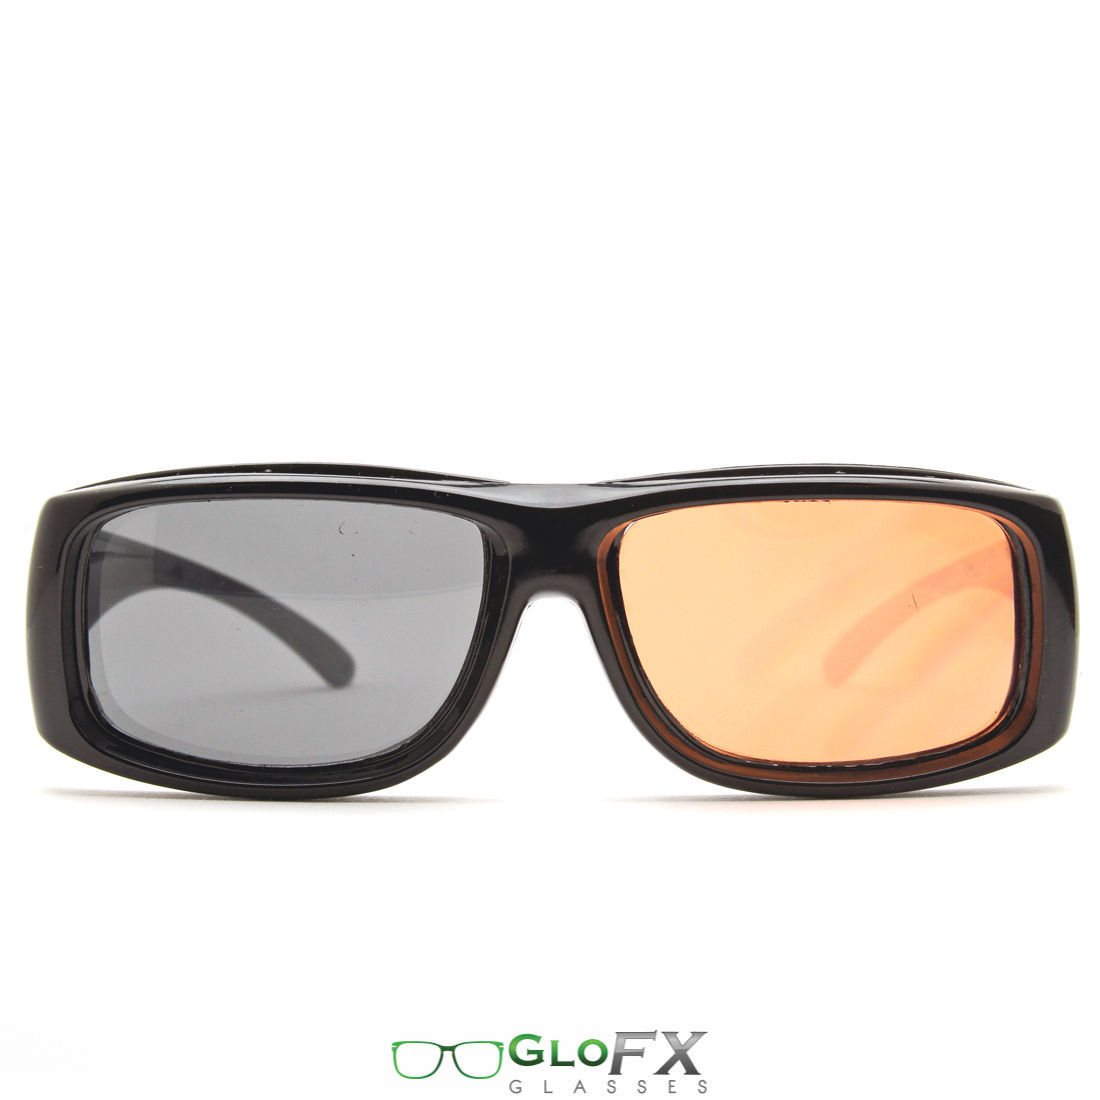 79a6c37f60 GloFX Diffraction Glasses – Interchangeable and 50 similar items